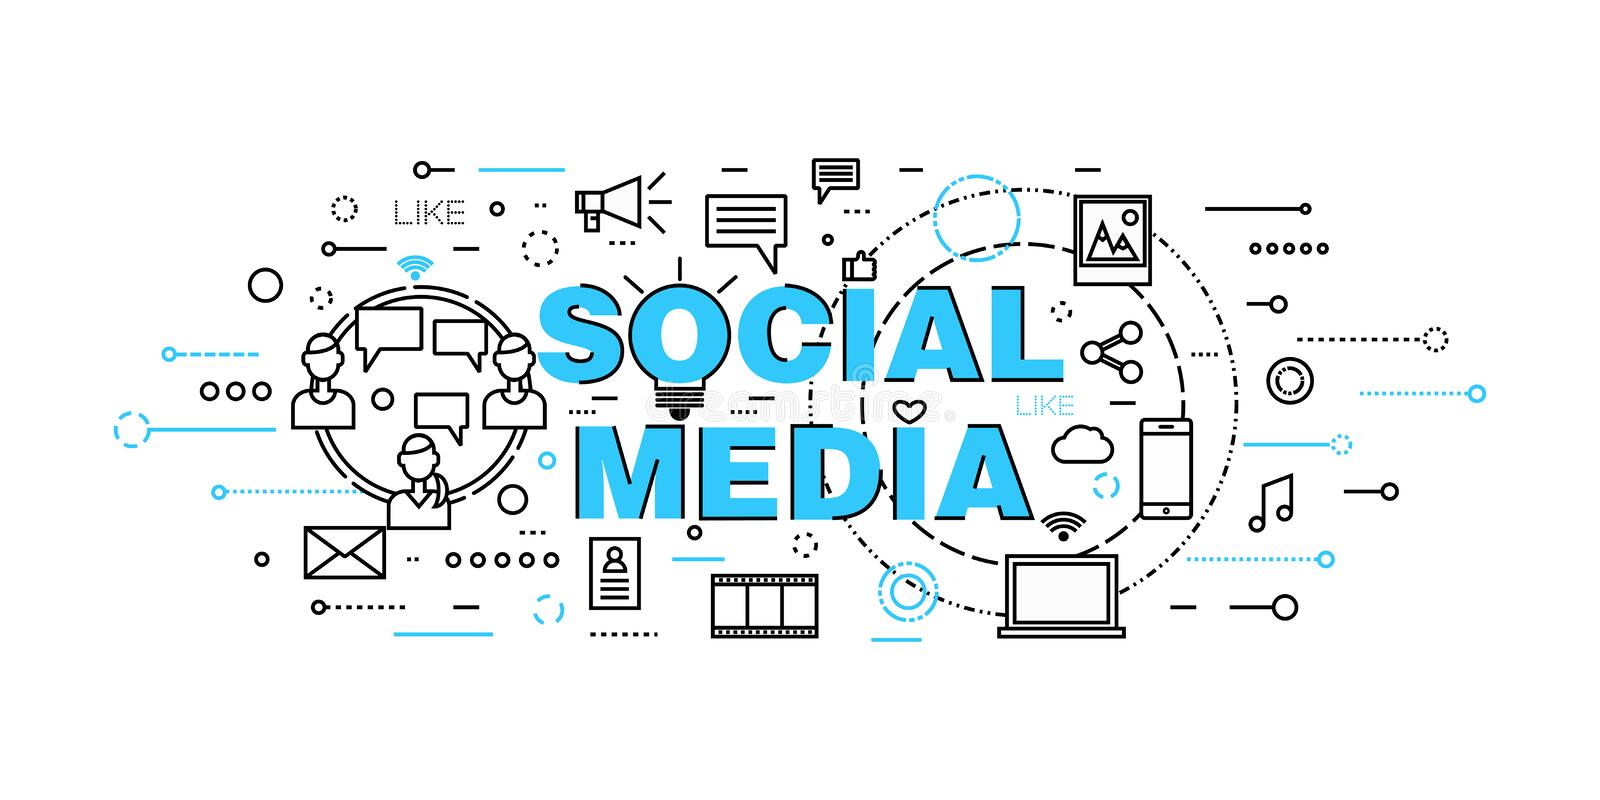 Modern flat thin line design vector illustration, concept of social media, social networking, web communtity and posting news royalty free illustration